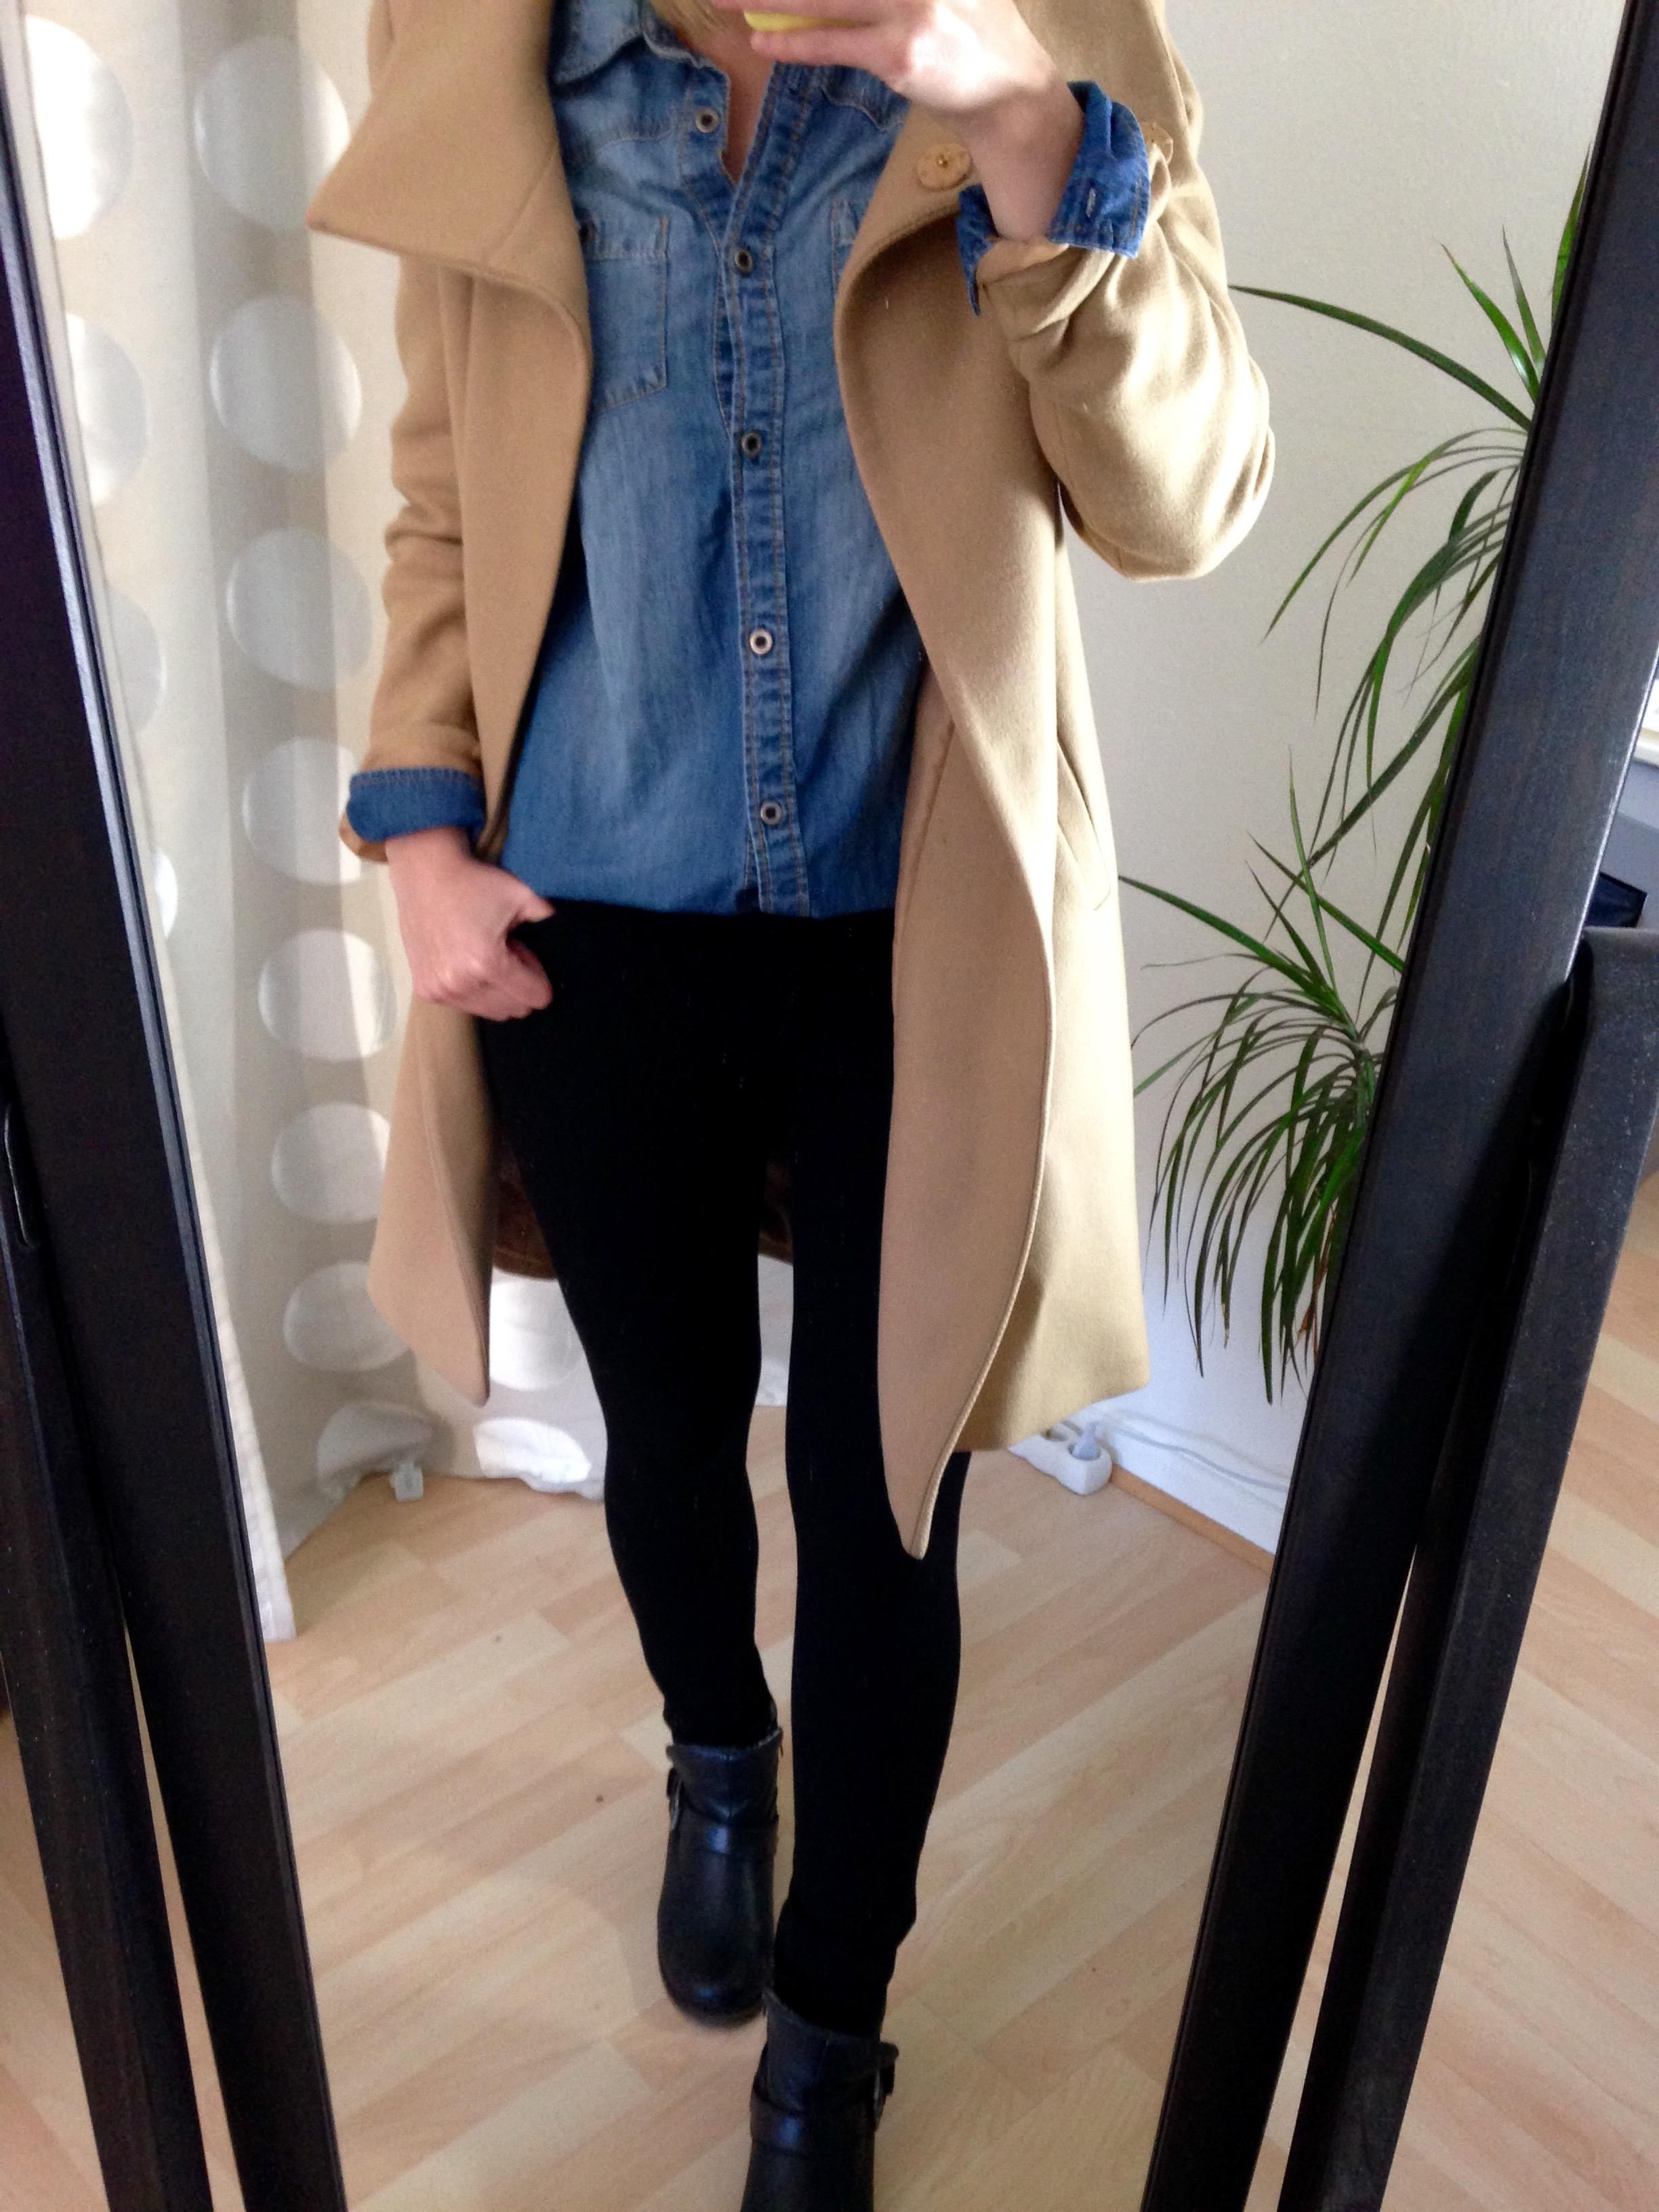 jeans hemd trenchcoat outfit camel coat chambray outfit. Black Bedroom Furniture Sets. Home Design Ideas